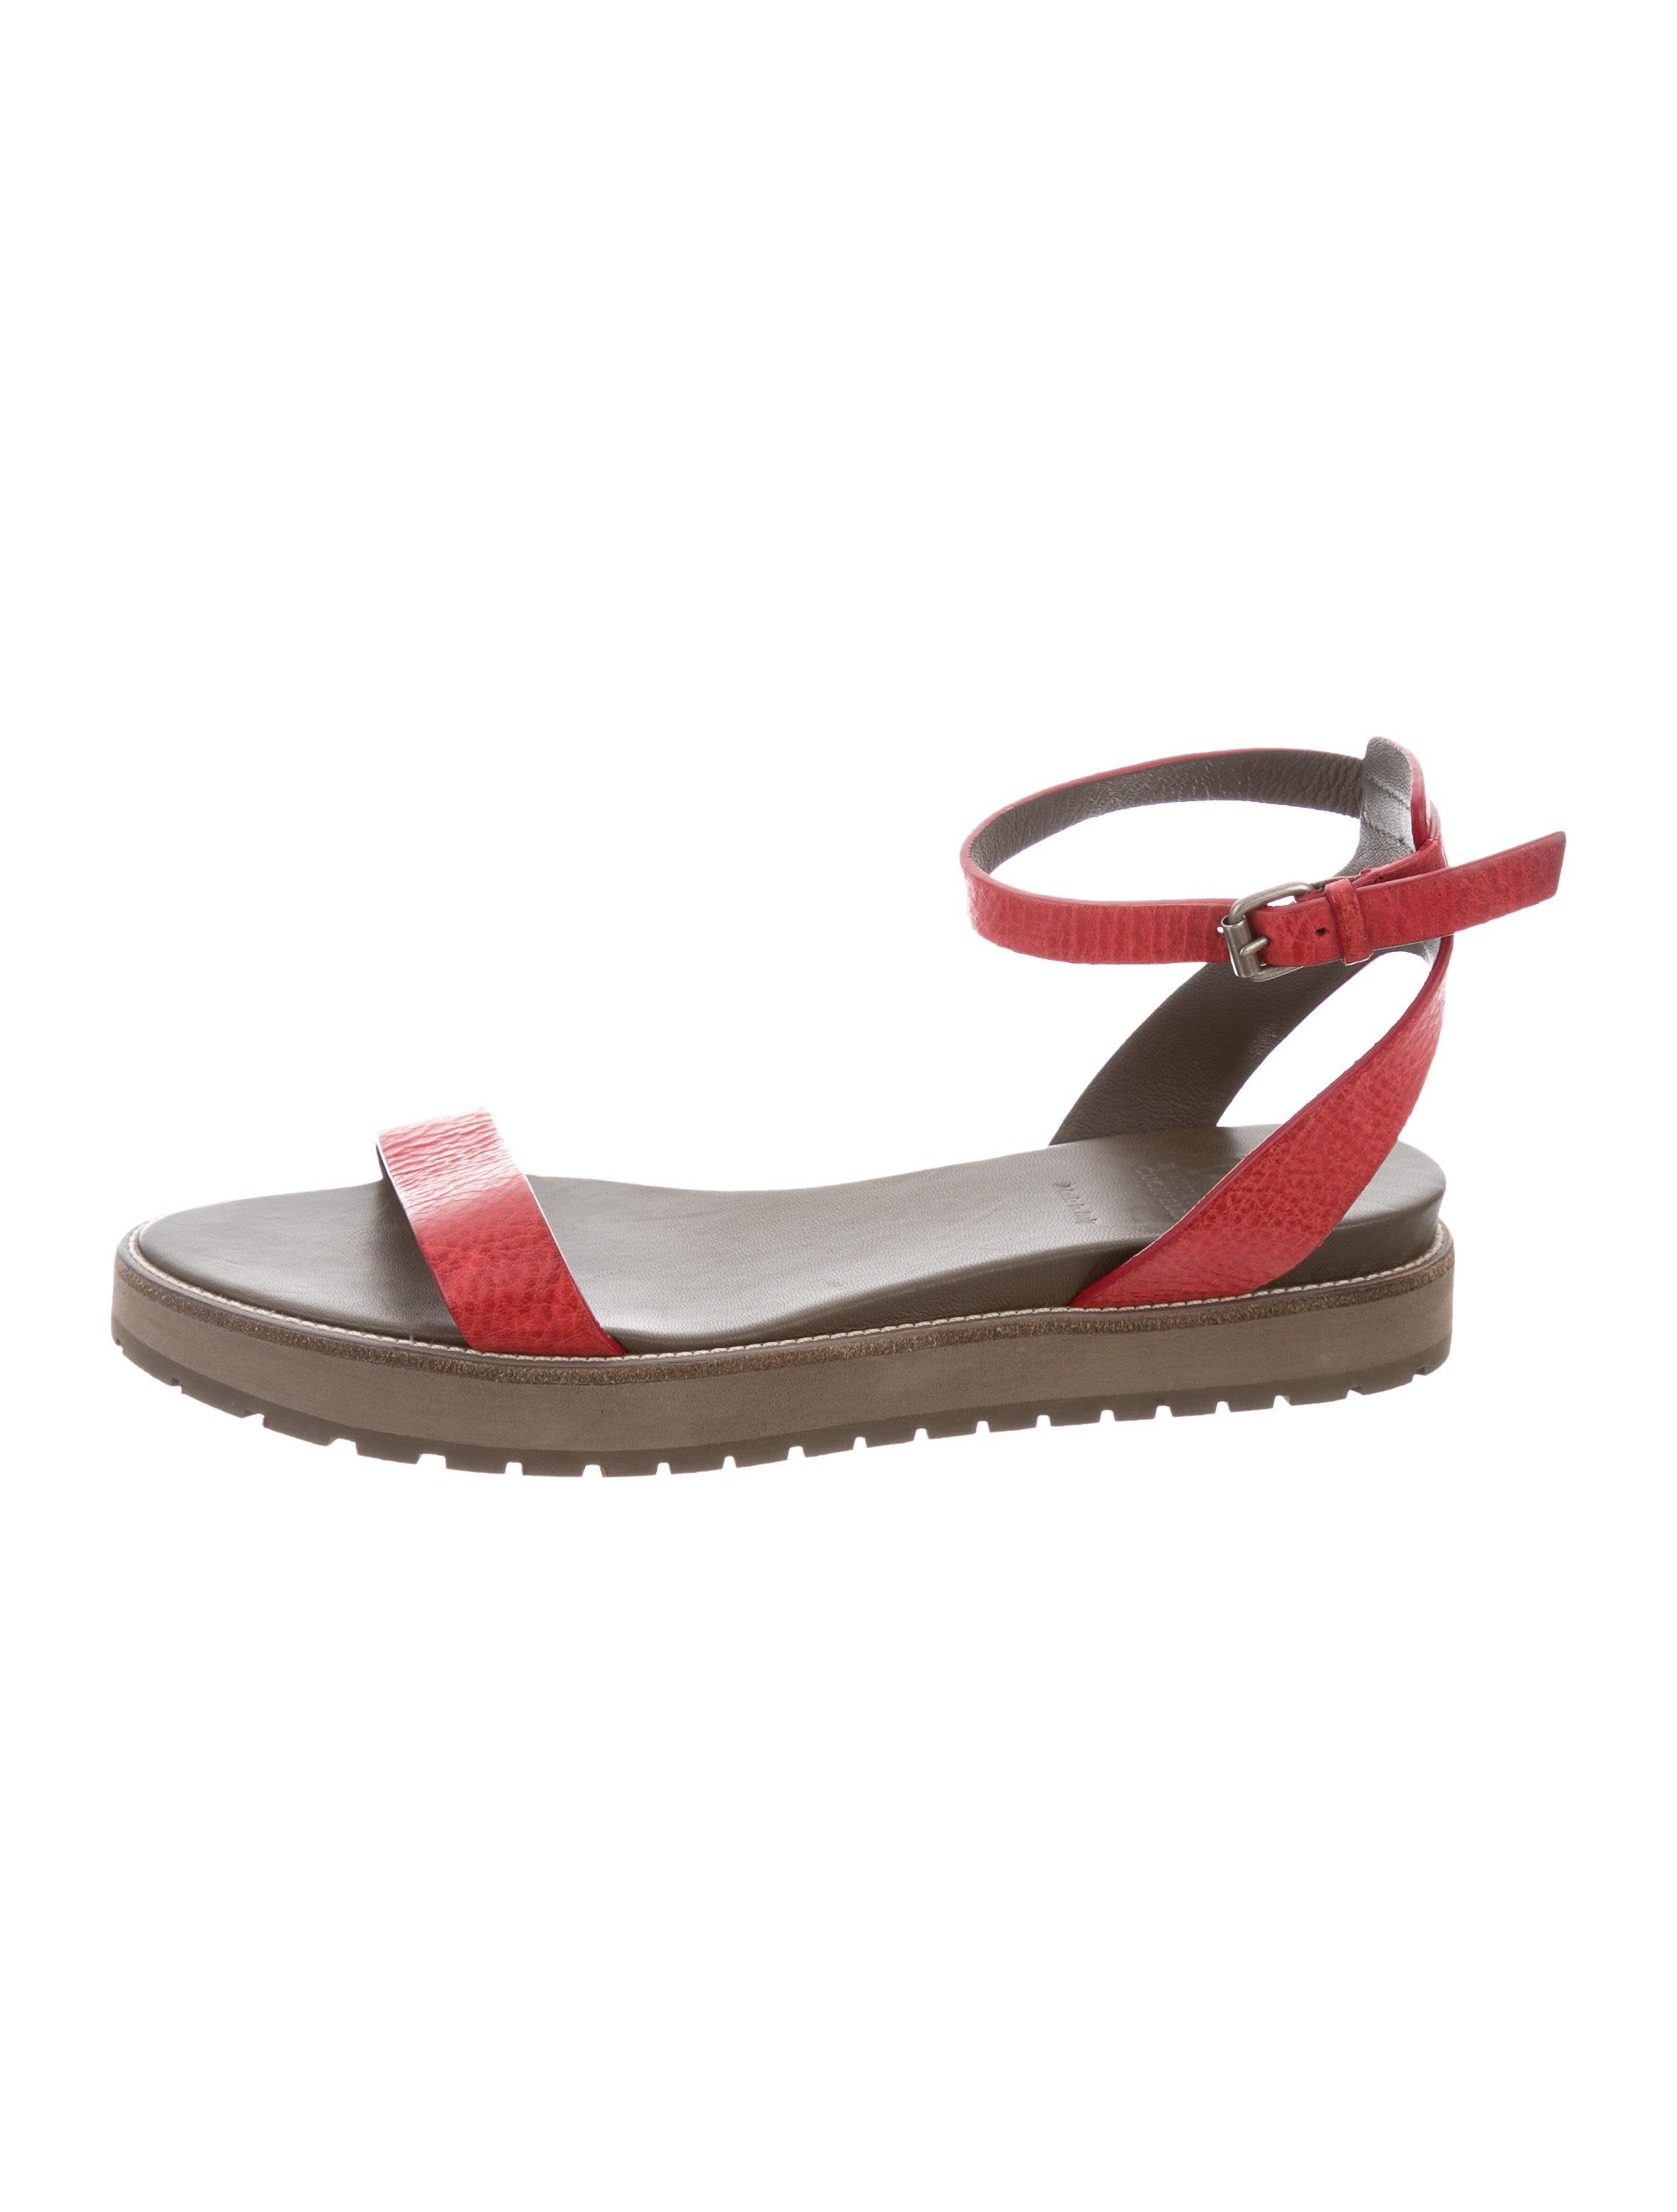 Brunello Cucinelli Leather Wedge Sandals w/ Tags sale vydkYcOi4